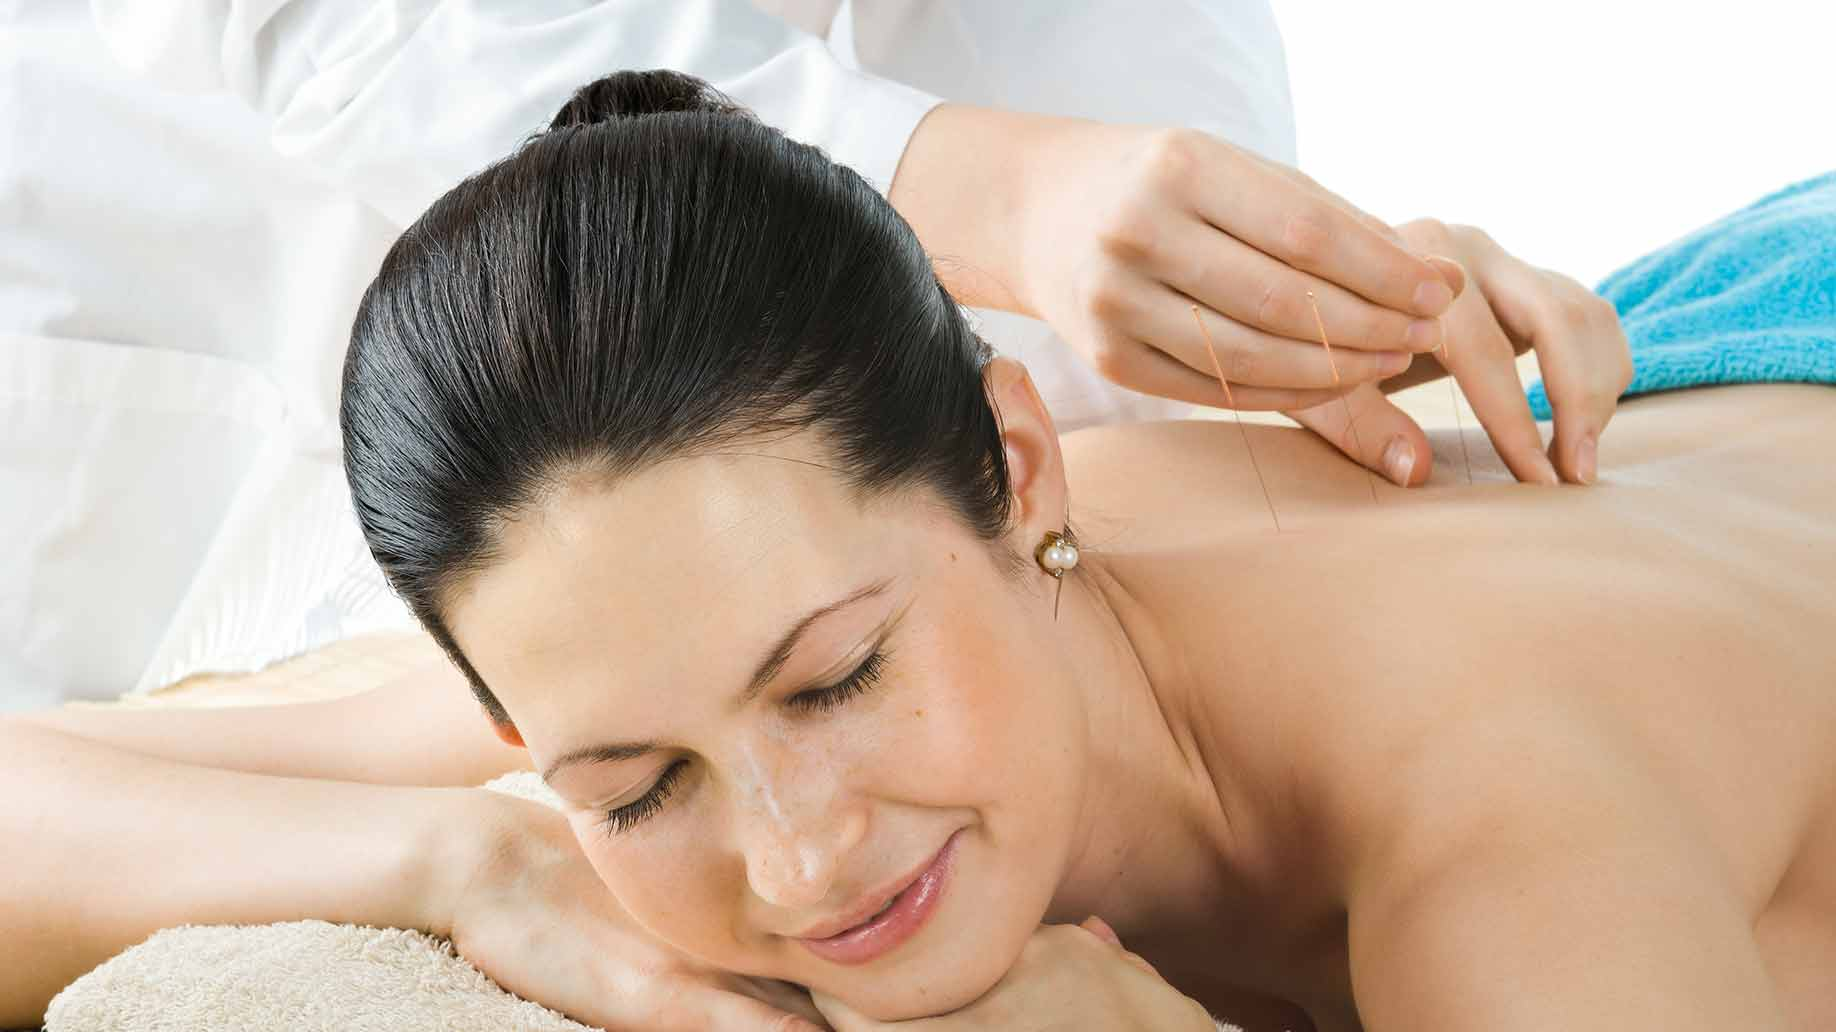 acupuncture with back needles soothing massage therapy